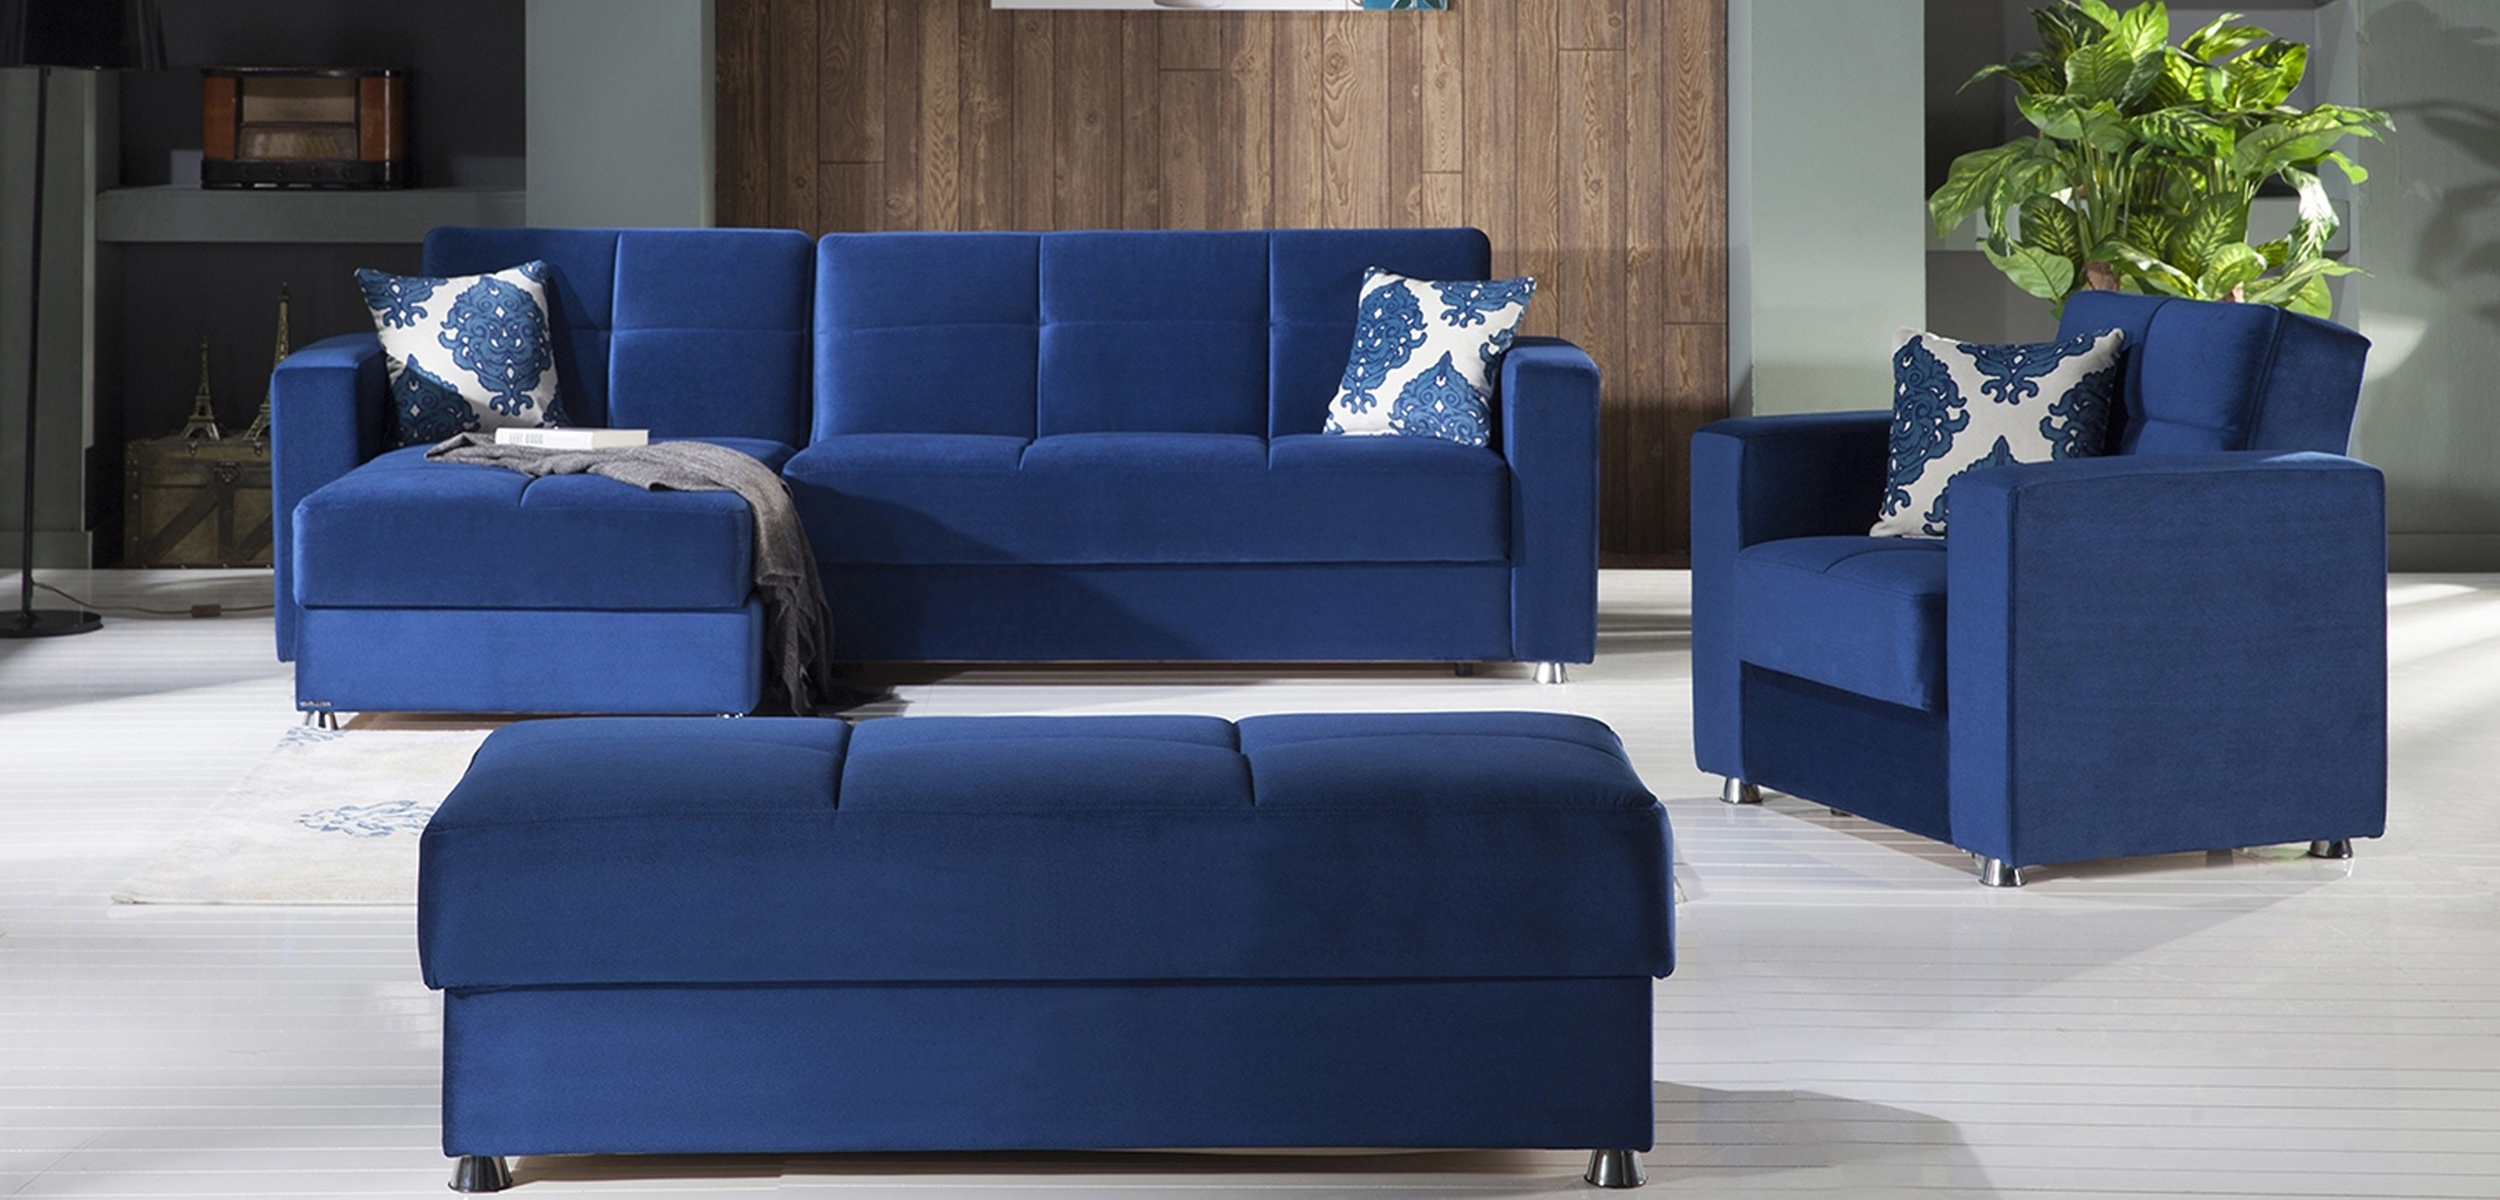 Most Recently Released Elegant Convertible Sectional Sofa In Roma Navy Plainistikbal Intended For Convertible Sectional Sofas (View 12 of 15)